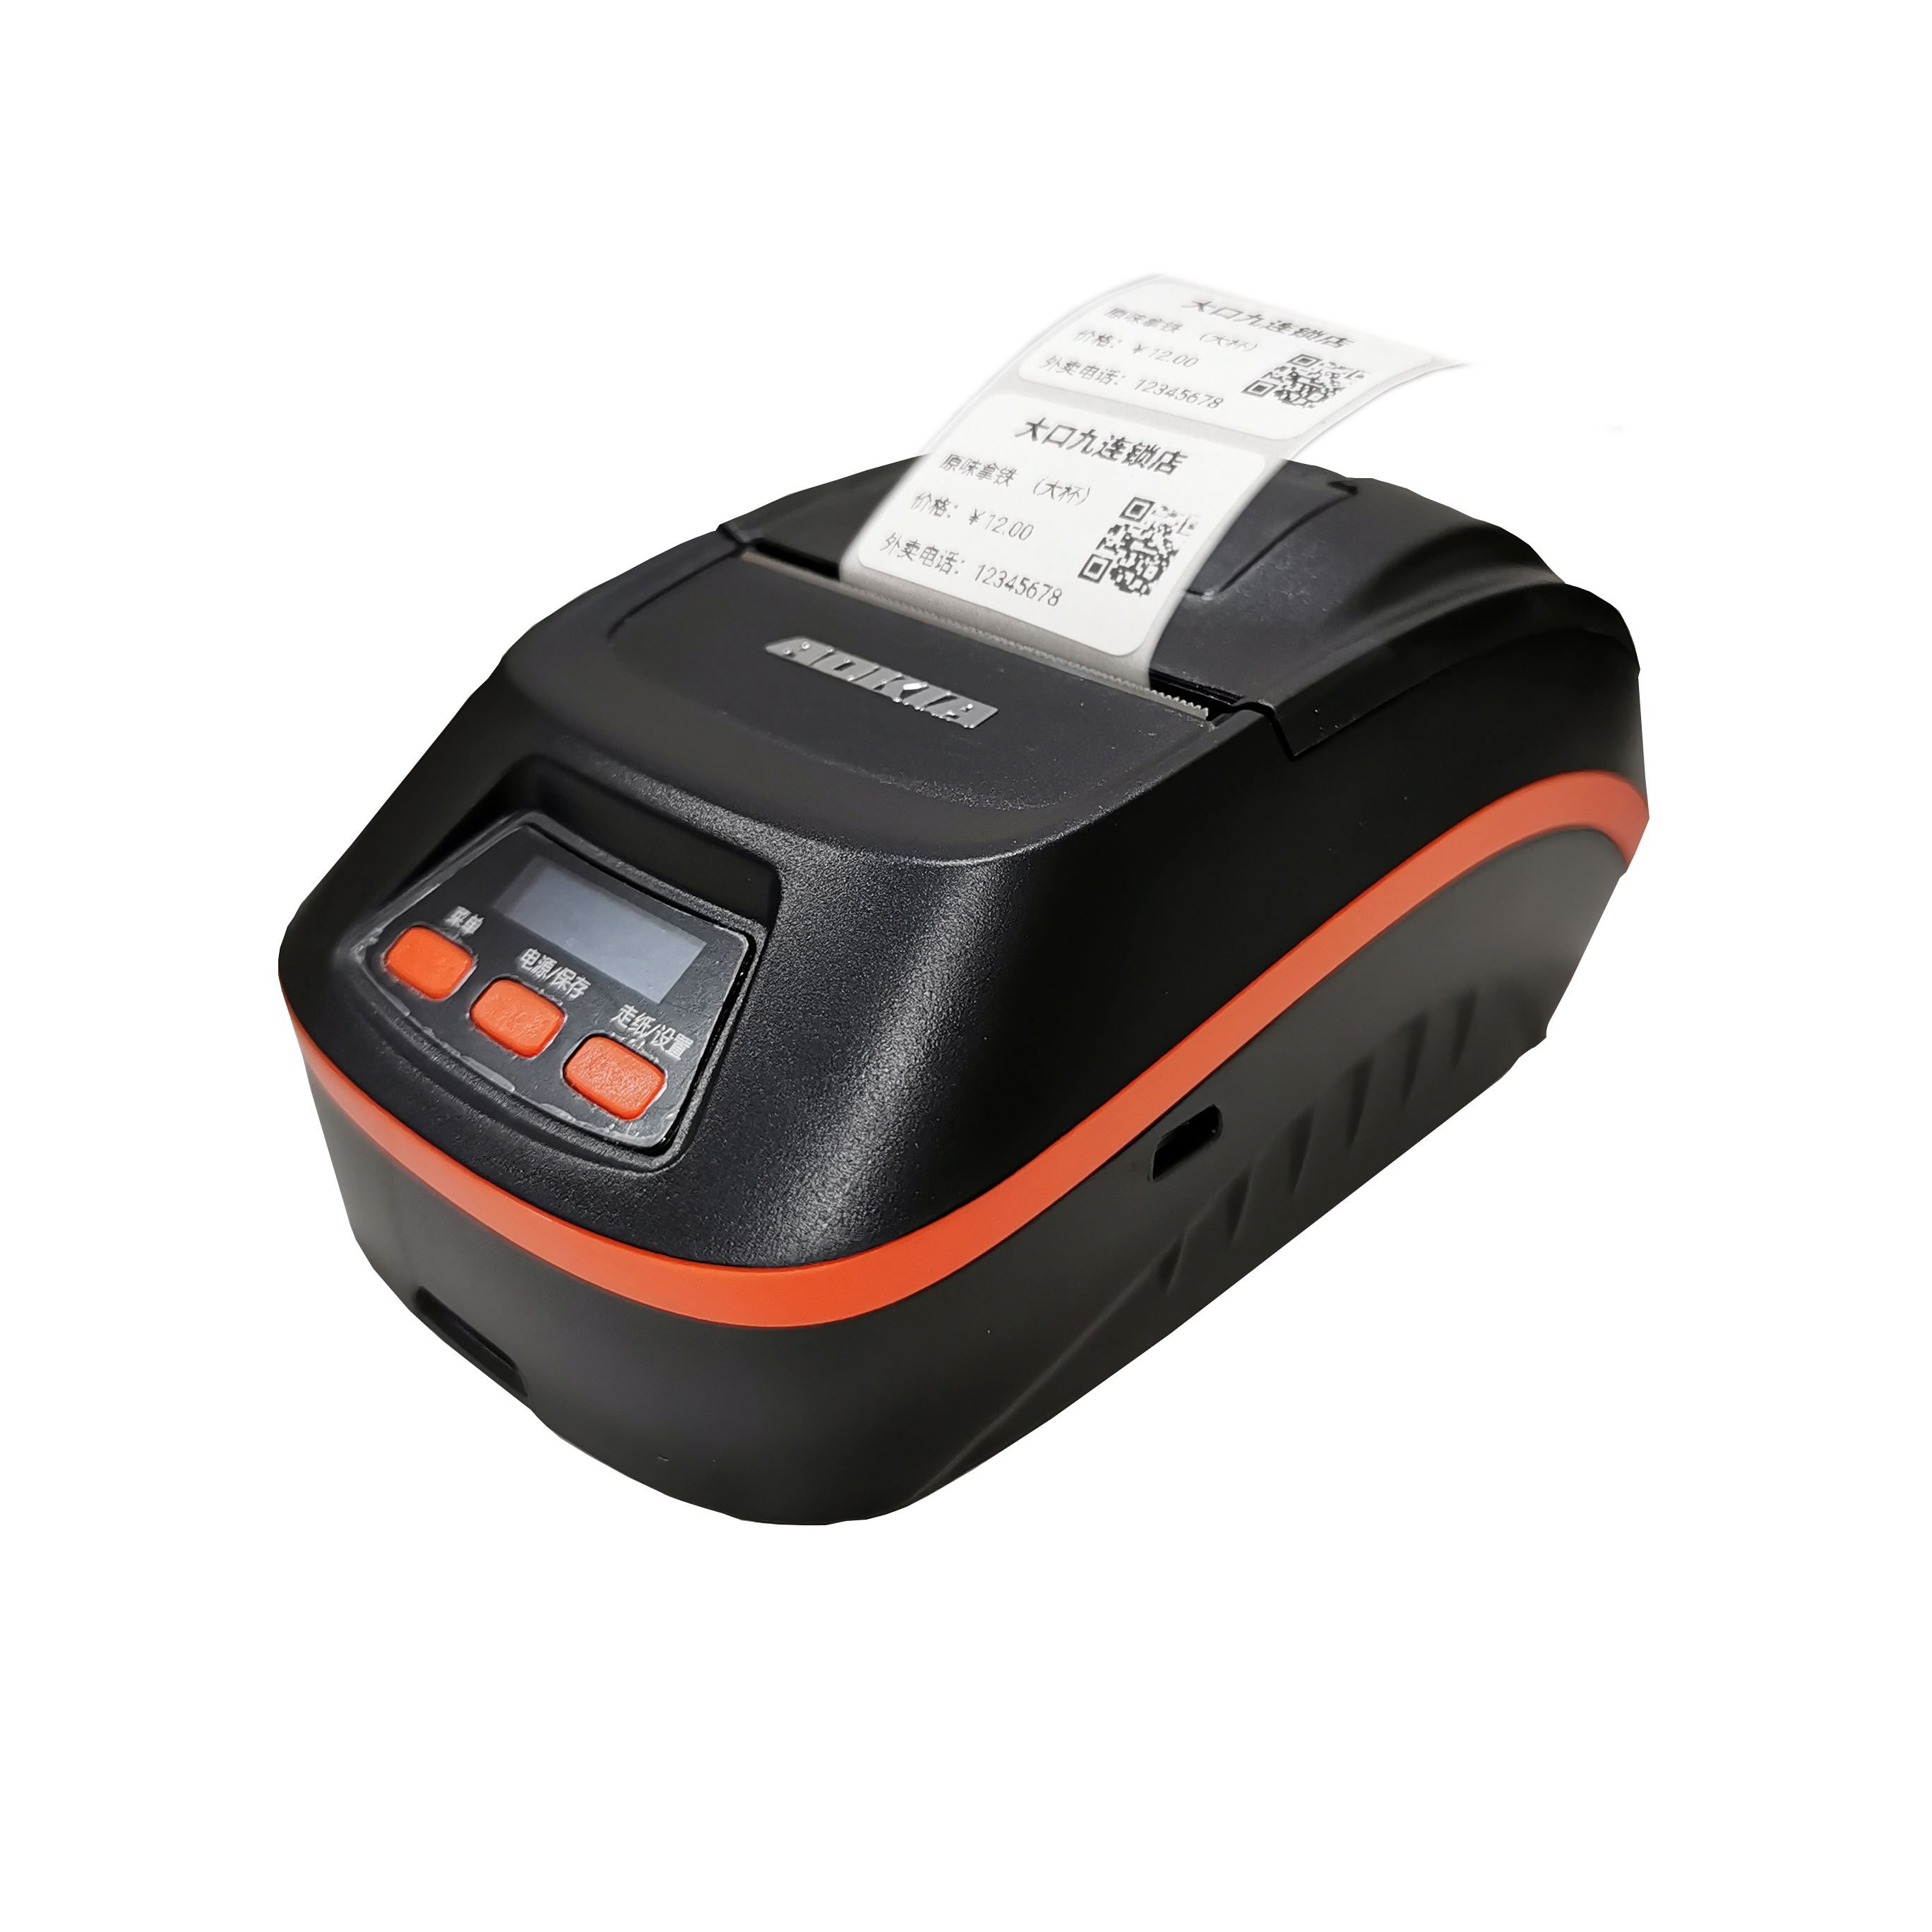 58mm Mobile Handheld Barcode Printer Featured Image